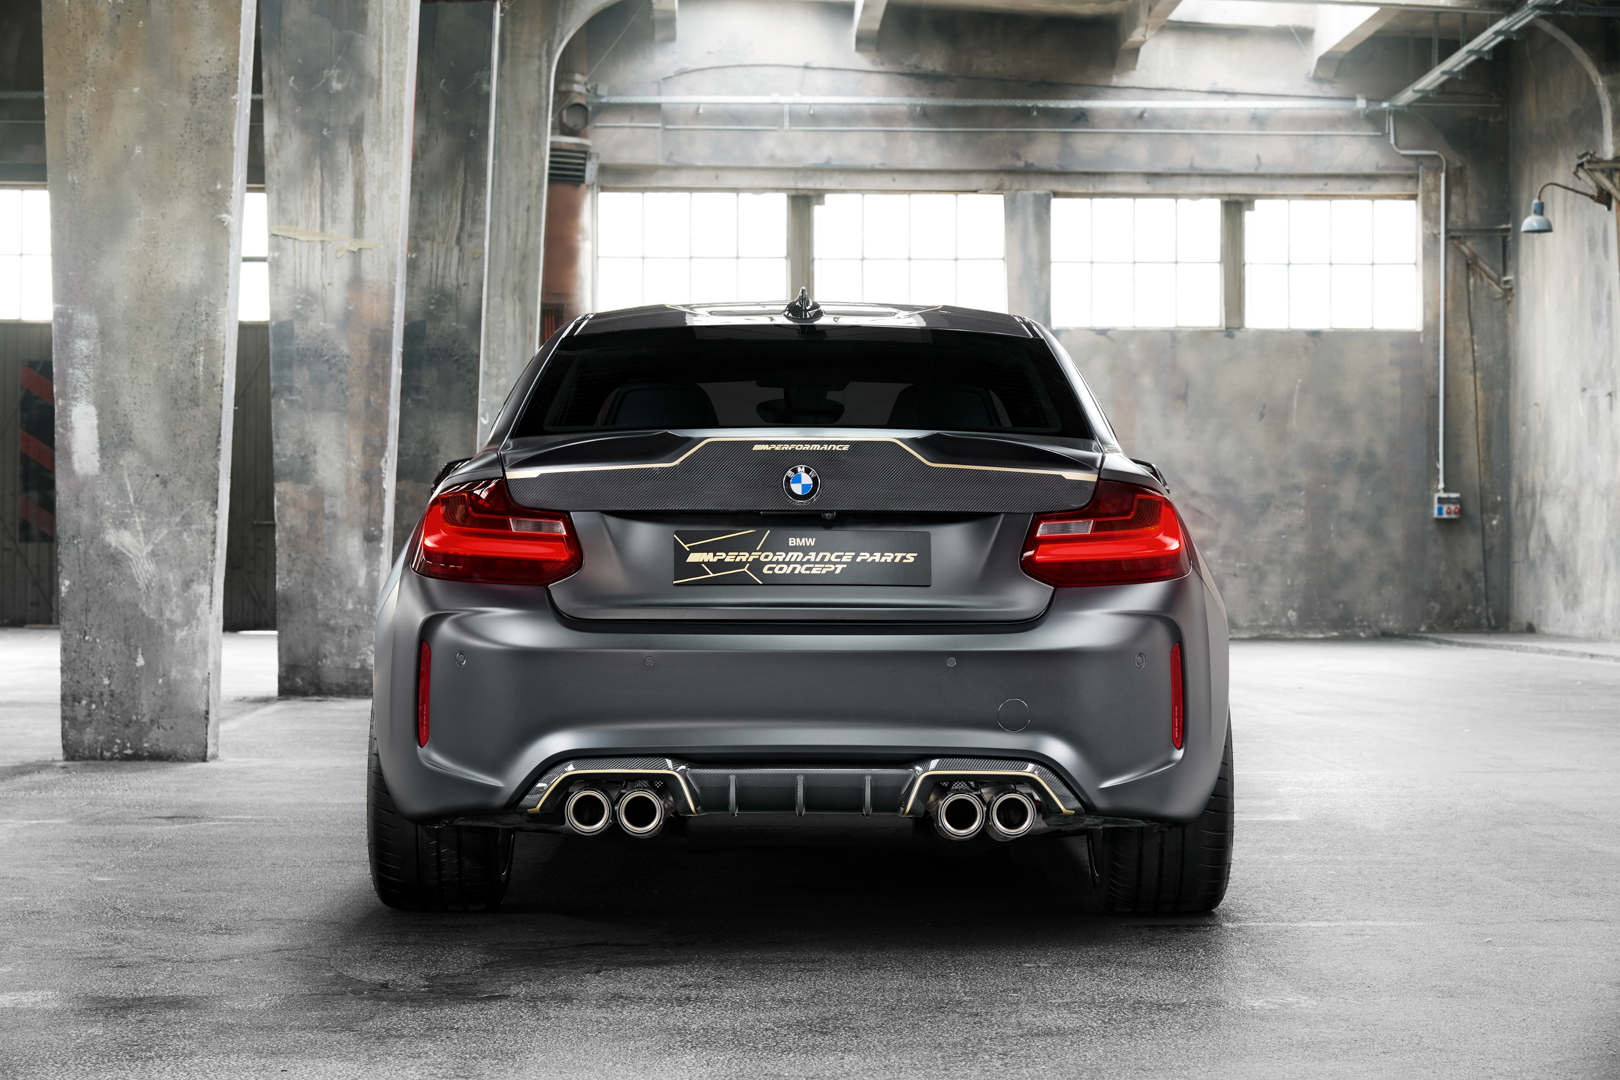 bmw m2 m performance parts concept to debut in goodwood. Black Bedroom Furniture Sets. Home Design Ideas